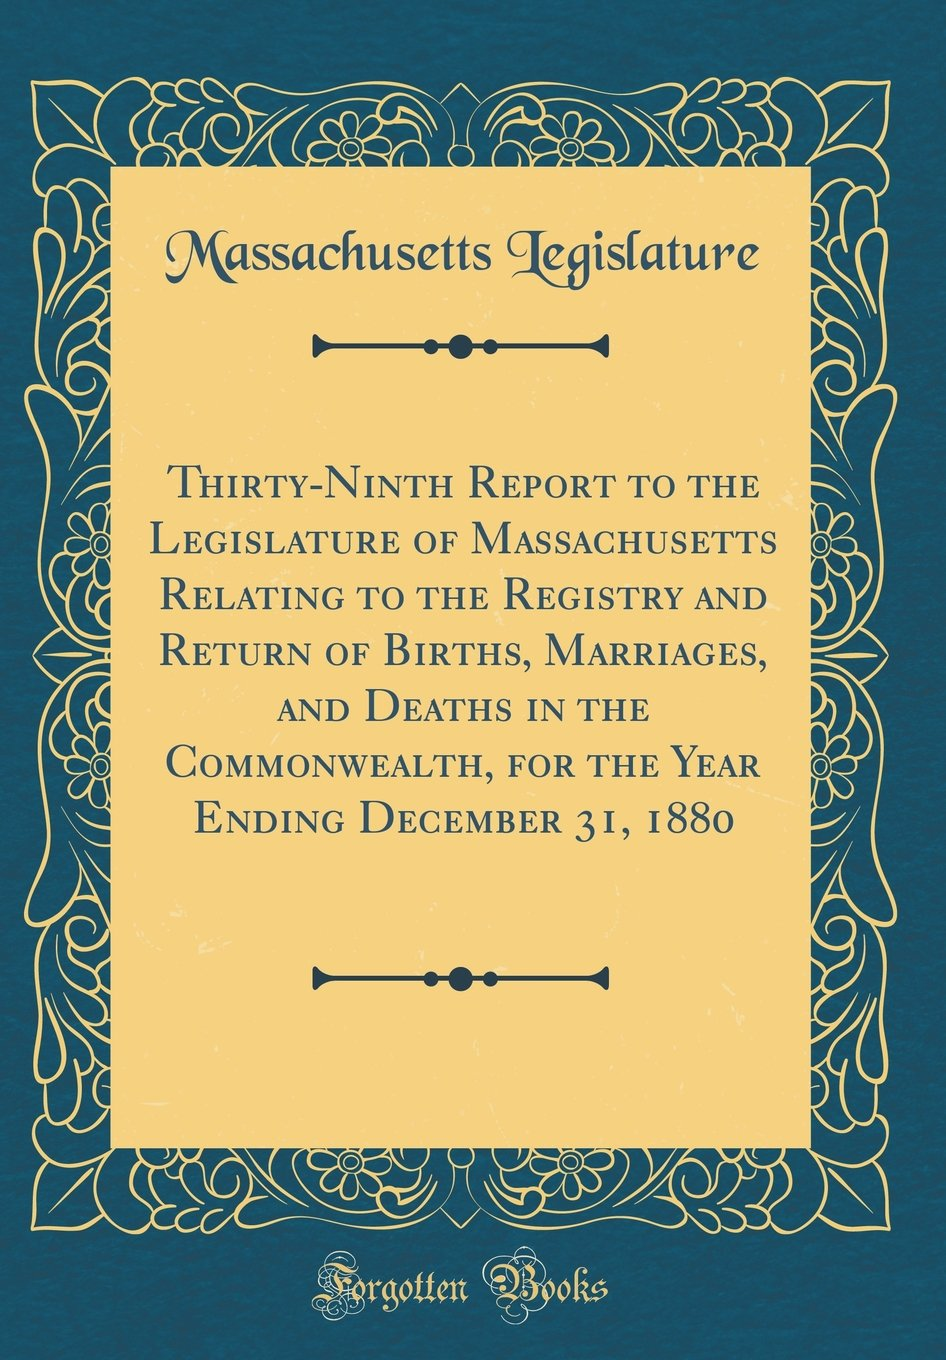 Read Online Thirty-Ninth Report to the Legislature of Massachusetts Relating to the Registry and Return of Births, Marriages, and Deaths in the Commonwealth, for ... Ending December 31, 1880 (Classic Reprint) pdf